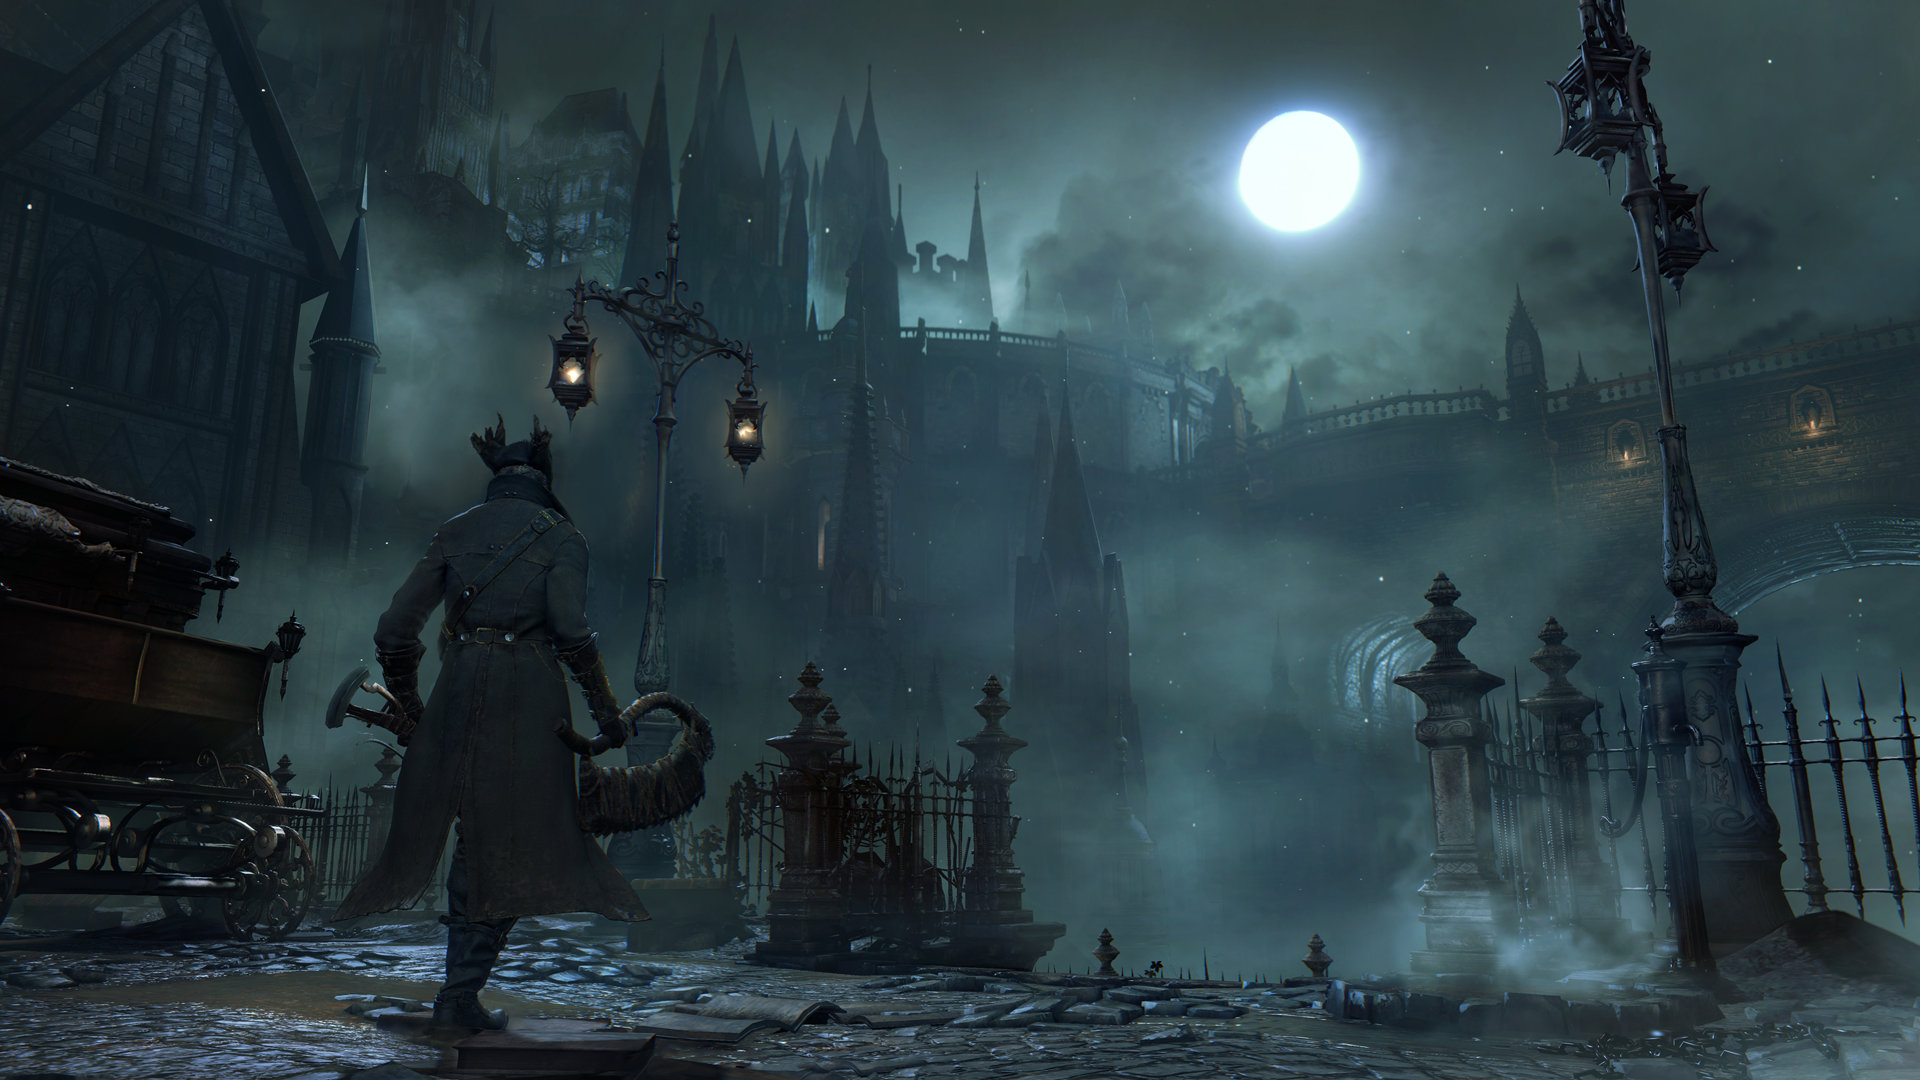 How similar are Dark Souls and Bloodborne?